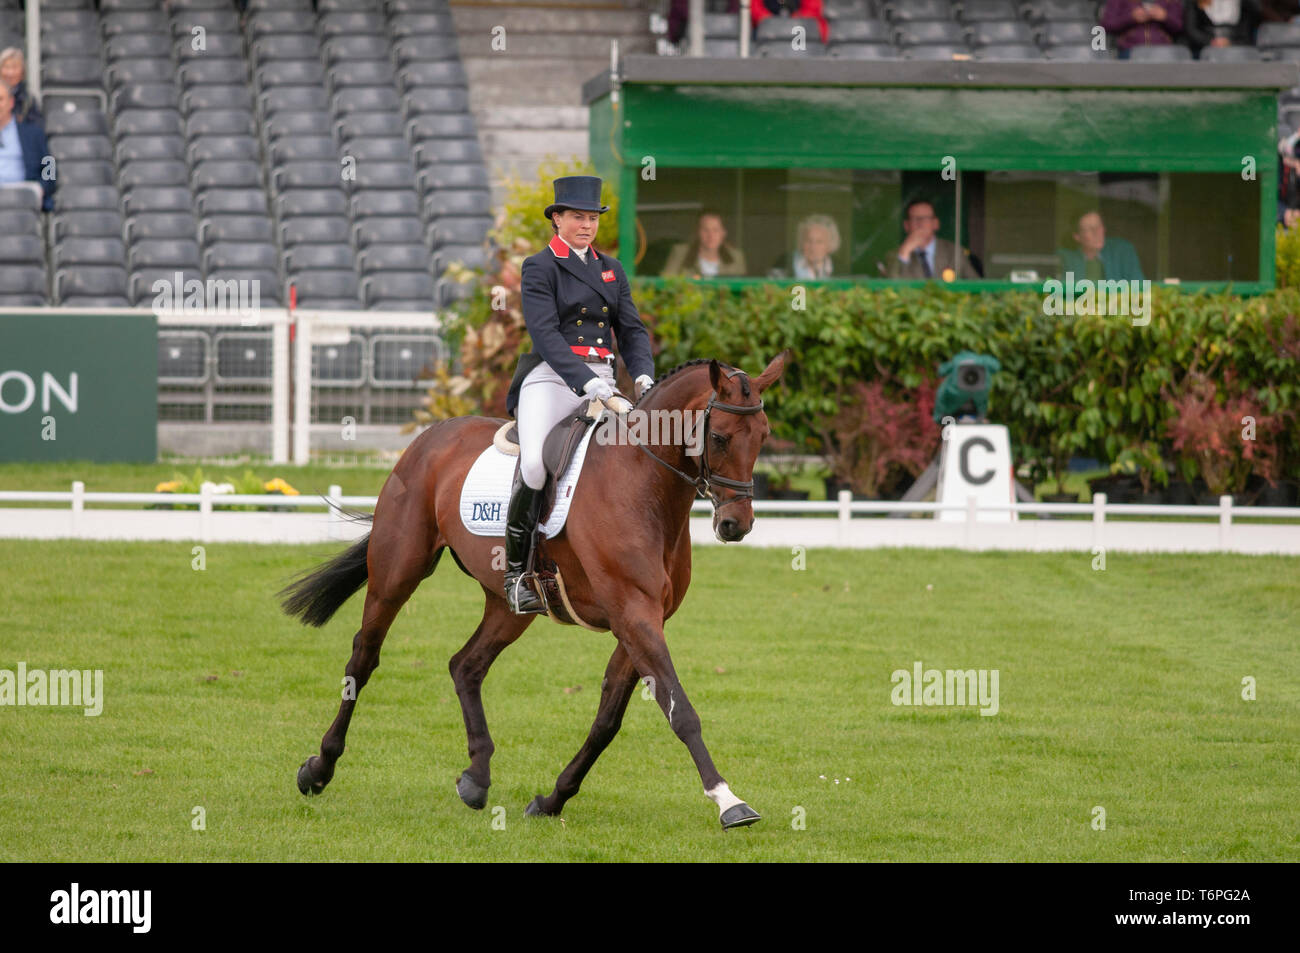 Badminton, Gloucestershire, United Kingdom, 2nd May 2019, Piggy French riding Vanir Kamira during the Dressage Phase of the 2019 Mitsubishi Motors Badminton Horse Trials, Jonathan Clarke/Alamy Live News Stock Photo